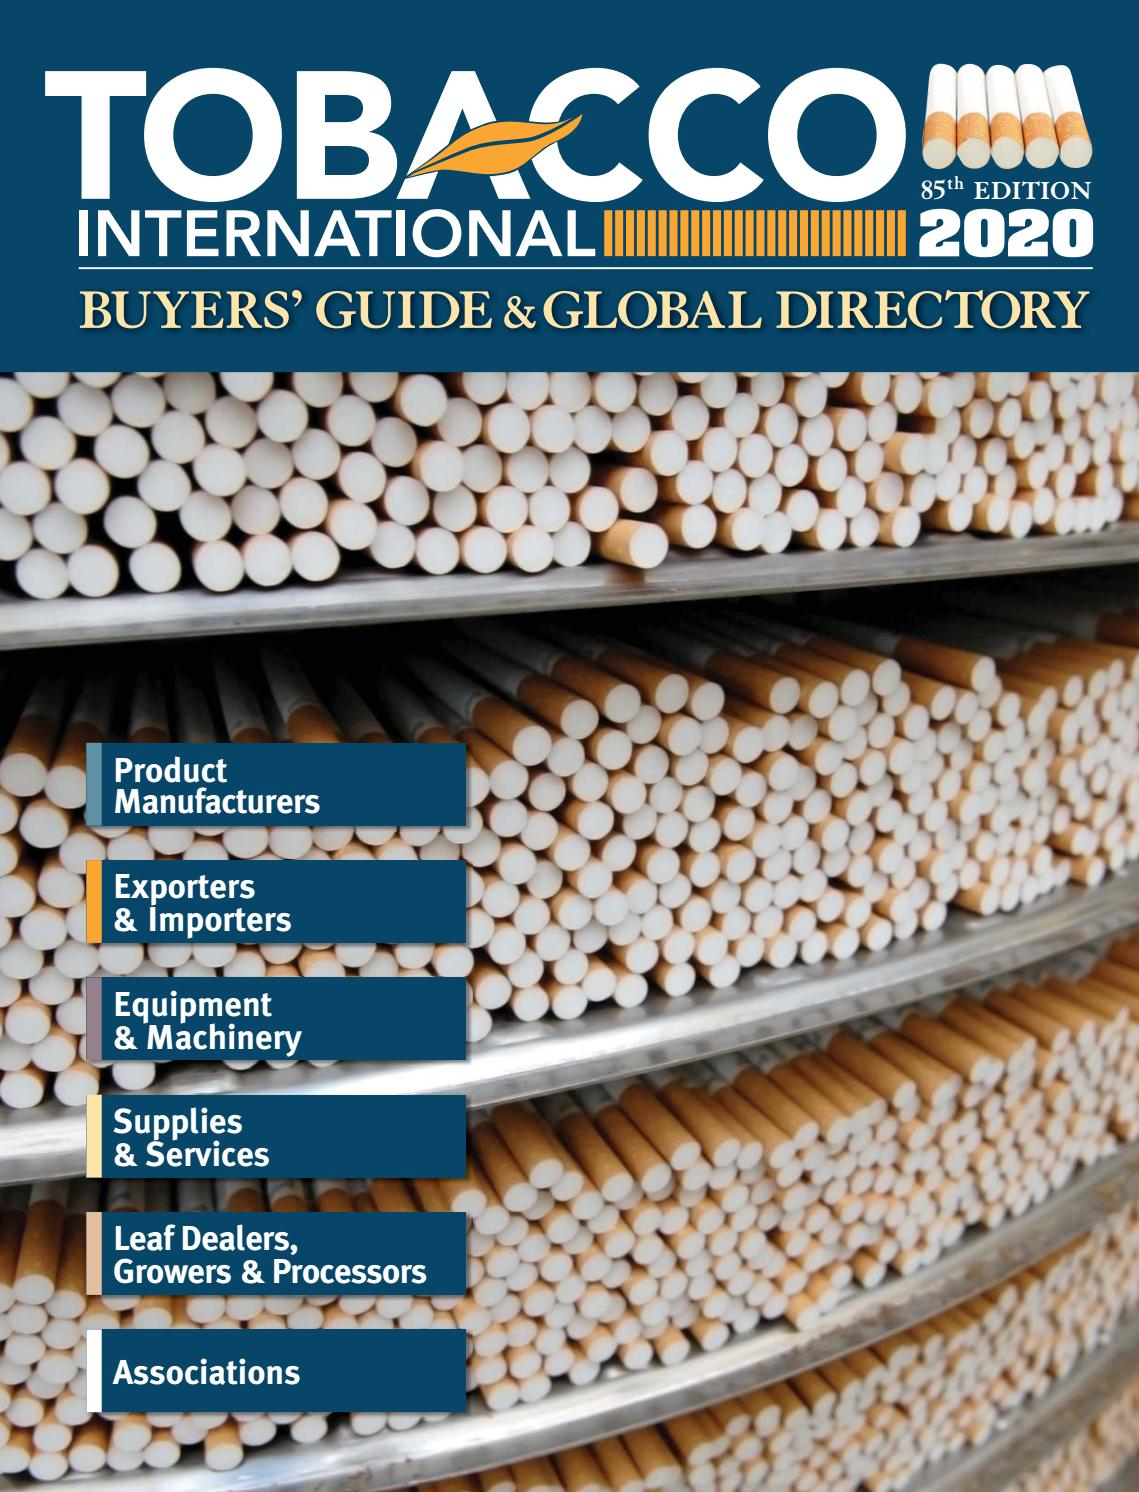 Tobacco International 2020 Buyers Guide Global Directory By Tobacco International Magazine Issuu